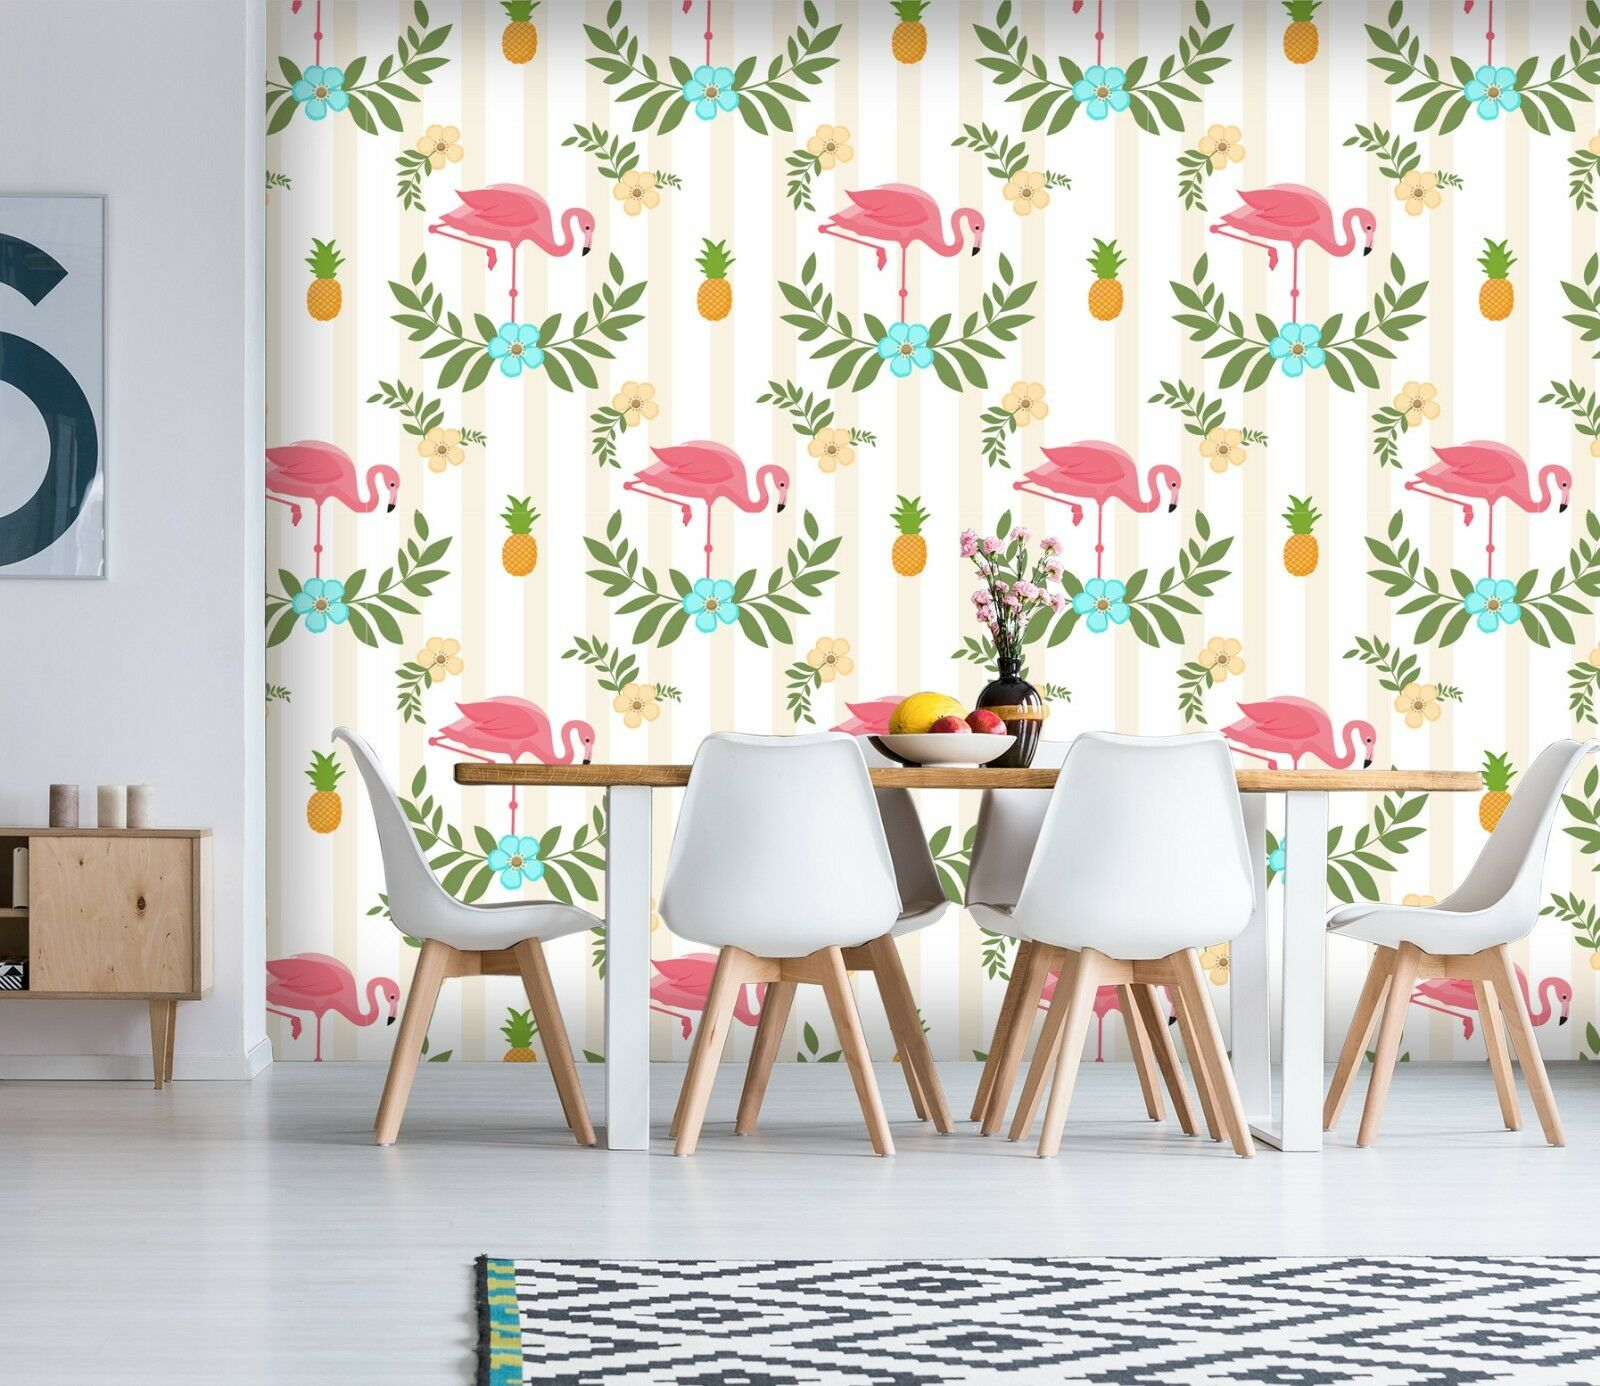 3D Cute Cartoon 001 Wallpaper Mural Print Wall Indoor Wallpaper Murals UK Summer